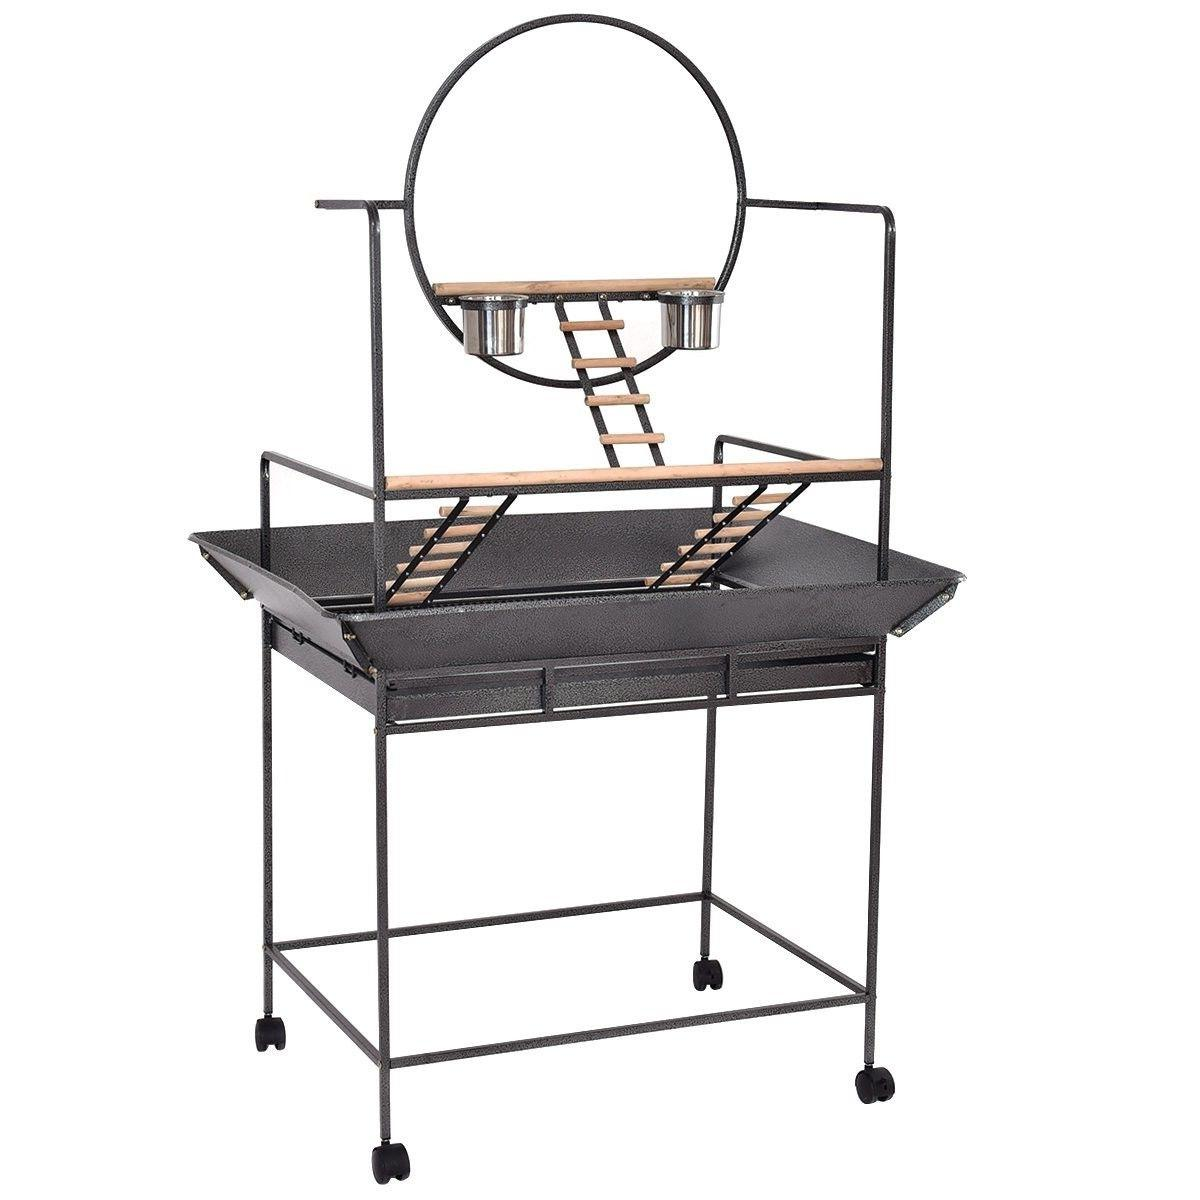 parrot play stand bird cage gym perch